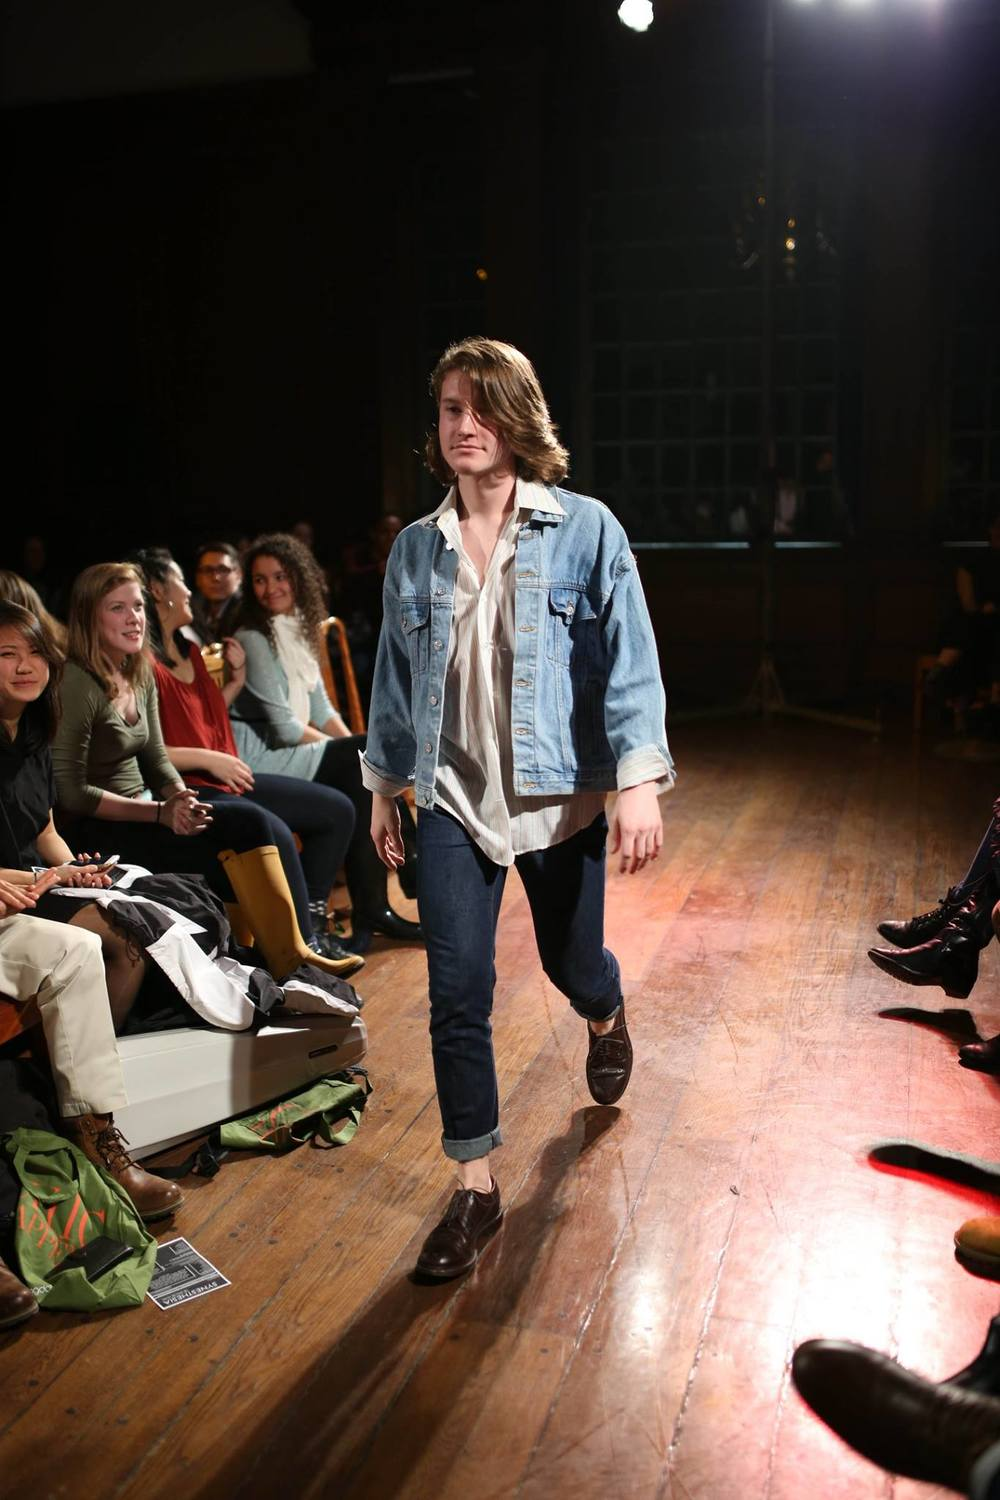 yale_Y_fashion_house_fashion_show_vintanthromodern_26.jpg